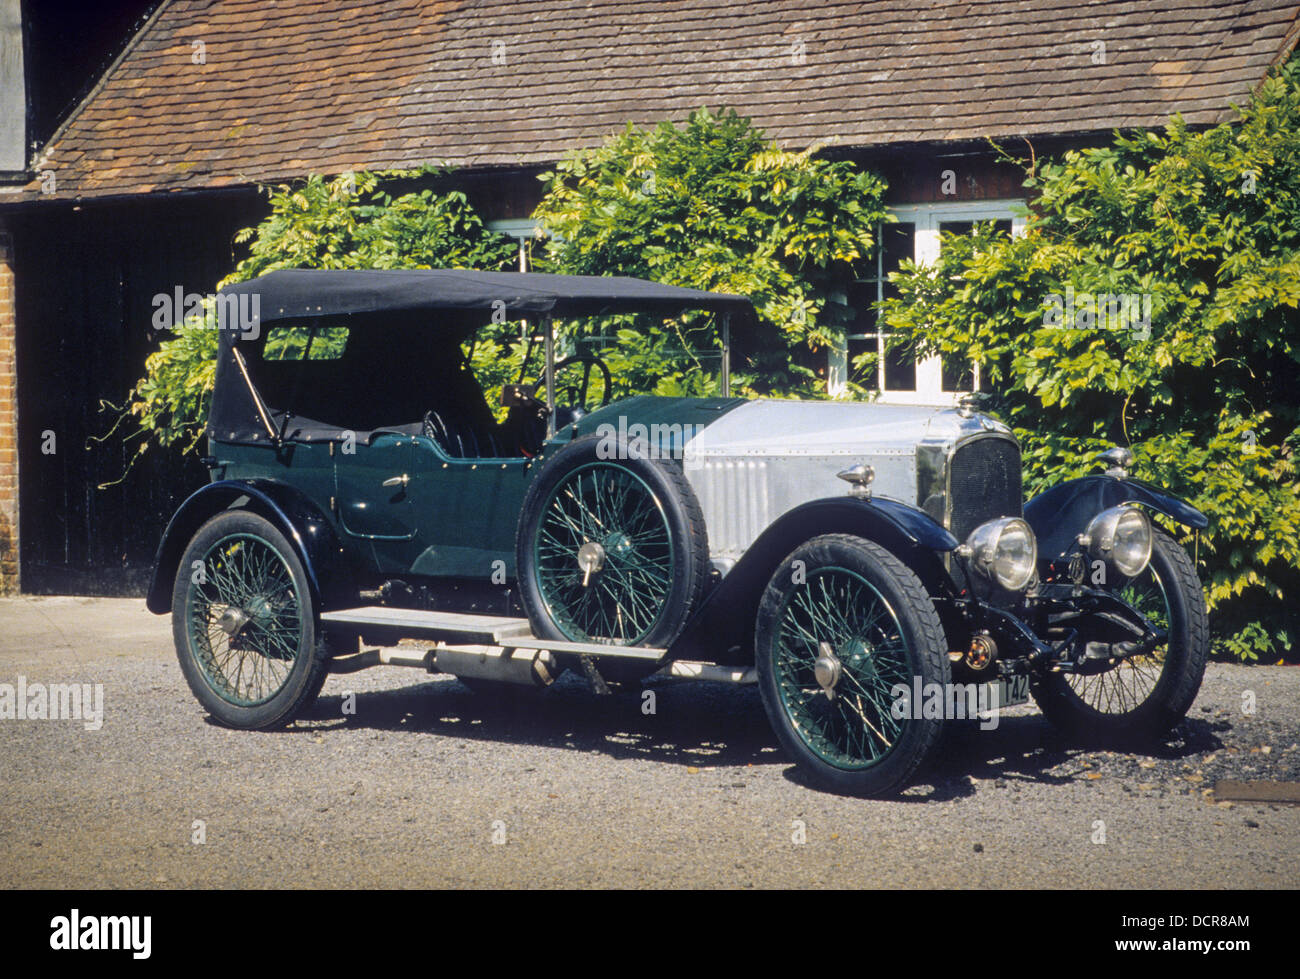 1920 VAUXHALL 30/98. Foto Nicky Wright Immagini Stock